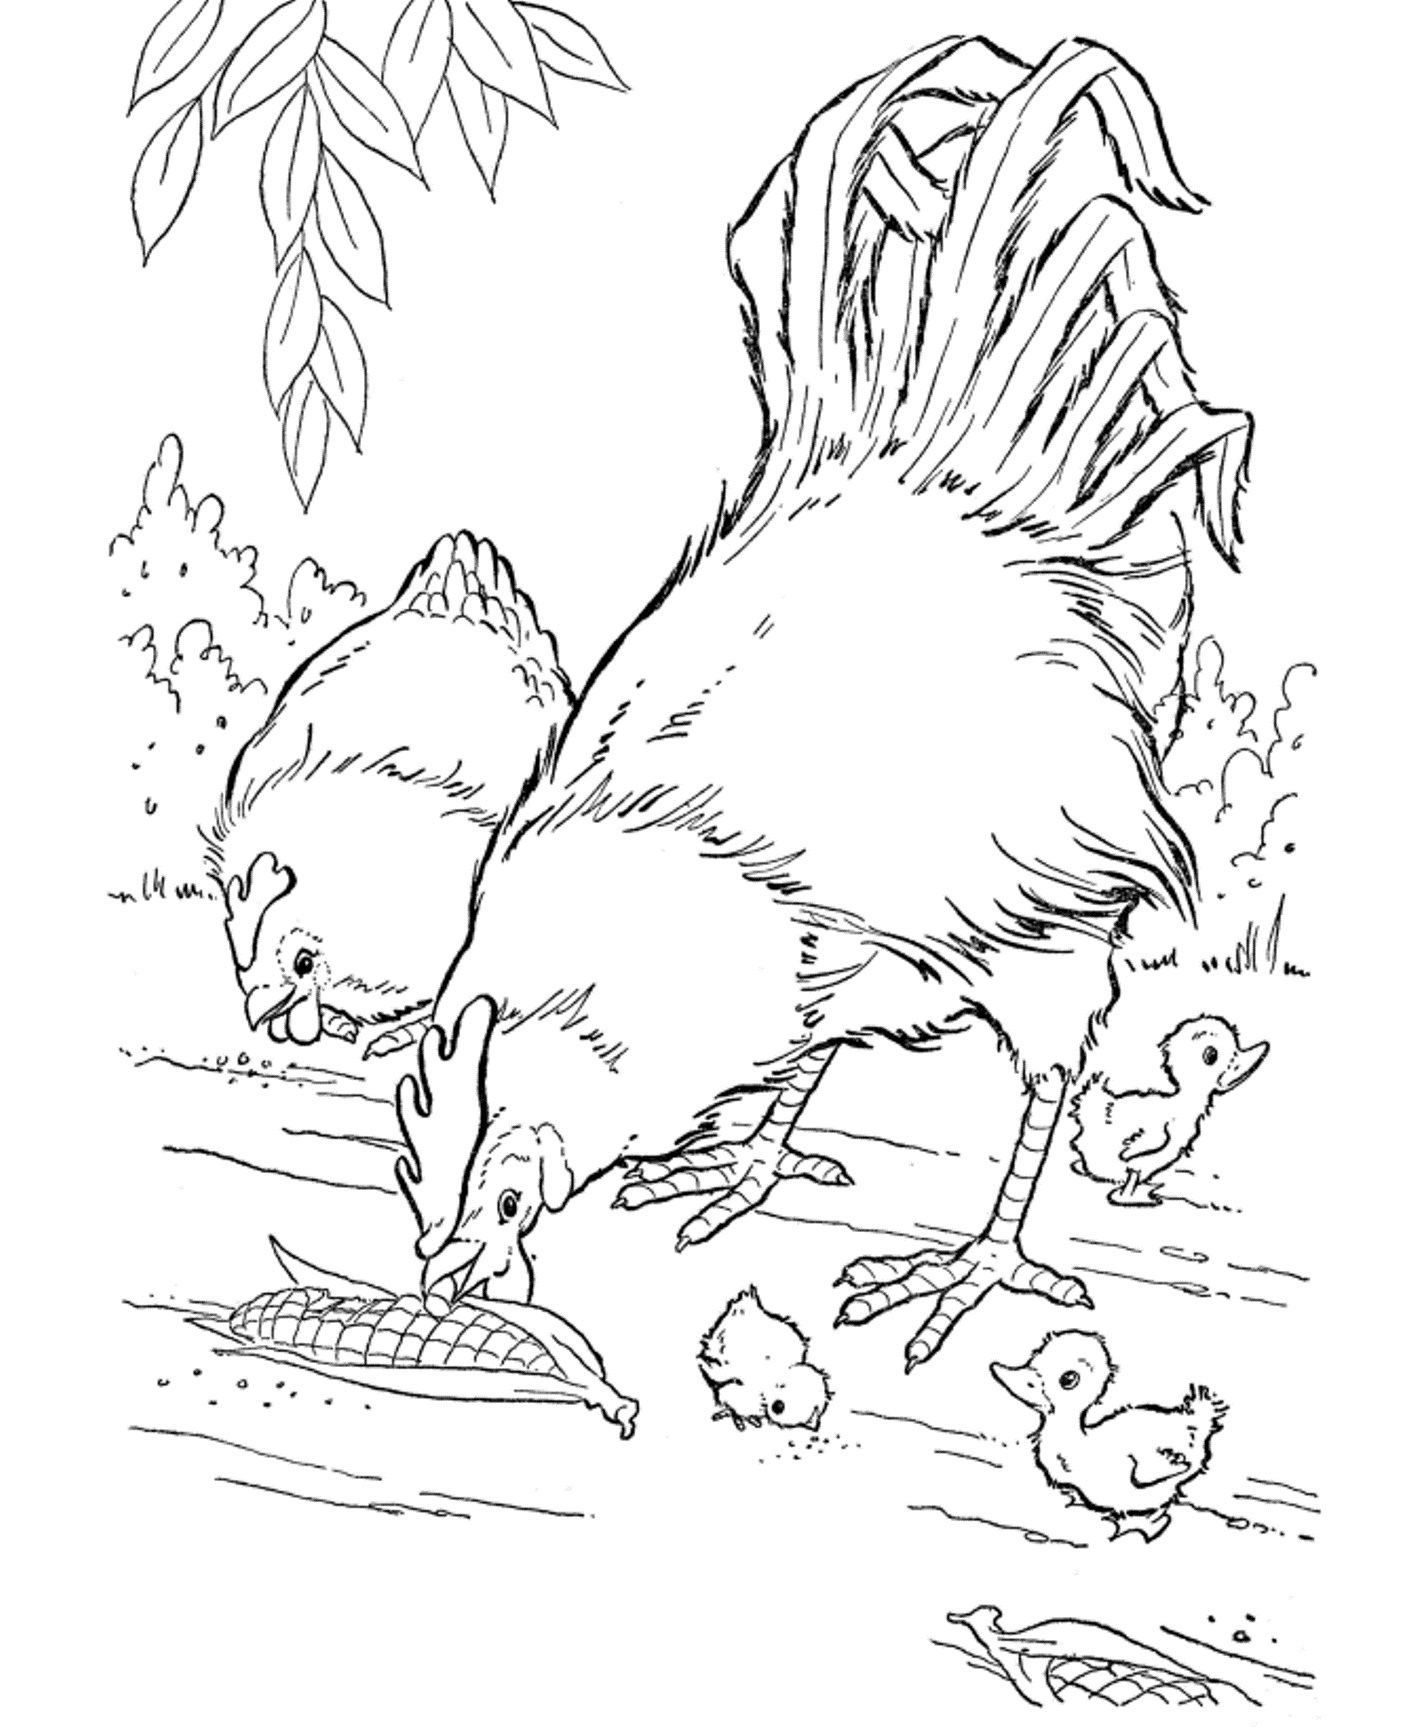 free coloring pages of realistic animals realisticanimalcoloringpages1lrgjpg thebooks pages realistic of animals free coloring